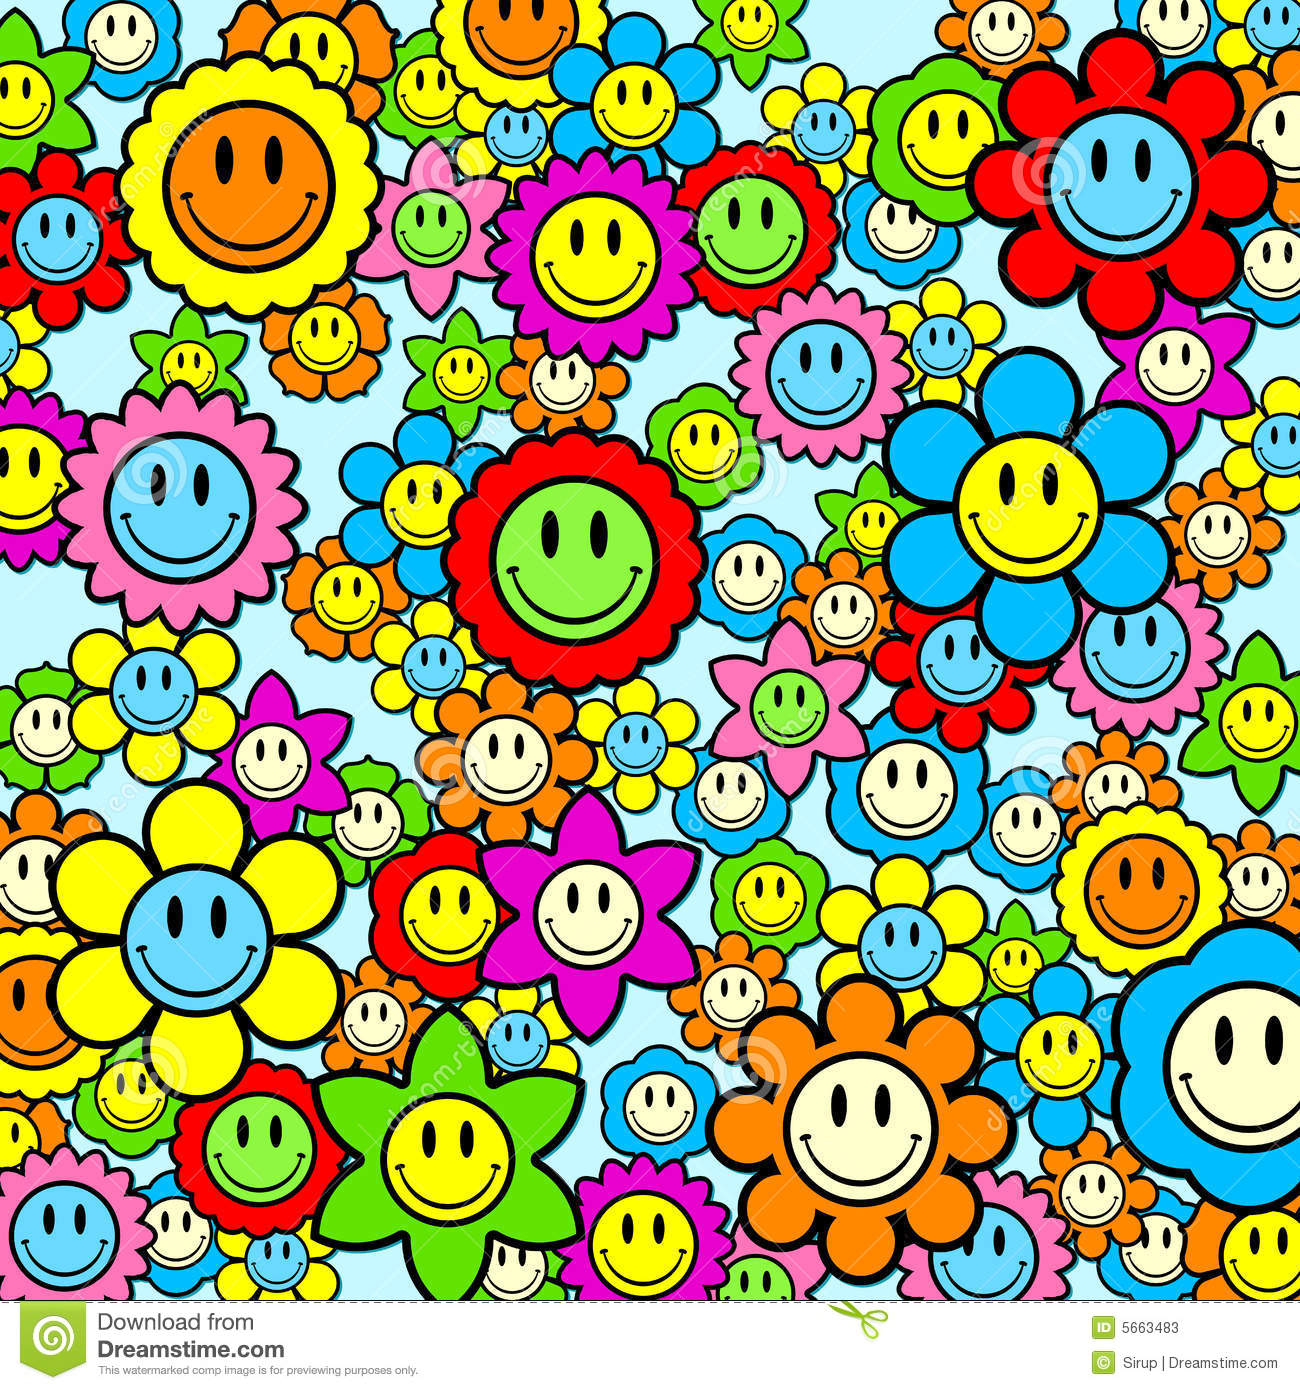 Colorful smiley face flower background stock illustrations 65 colorful smiley face flower background stock illustrations 65 colorful smiley face flower background stock illustrations vectors clipart dreamstime izmirmasajfo